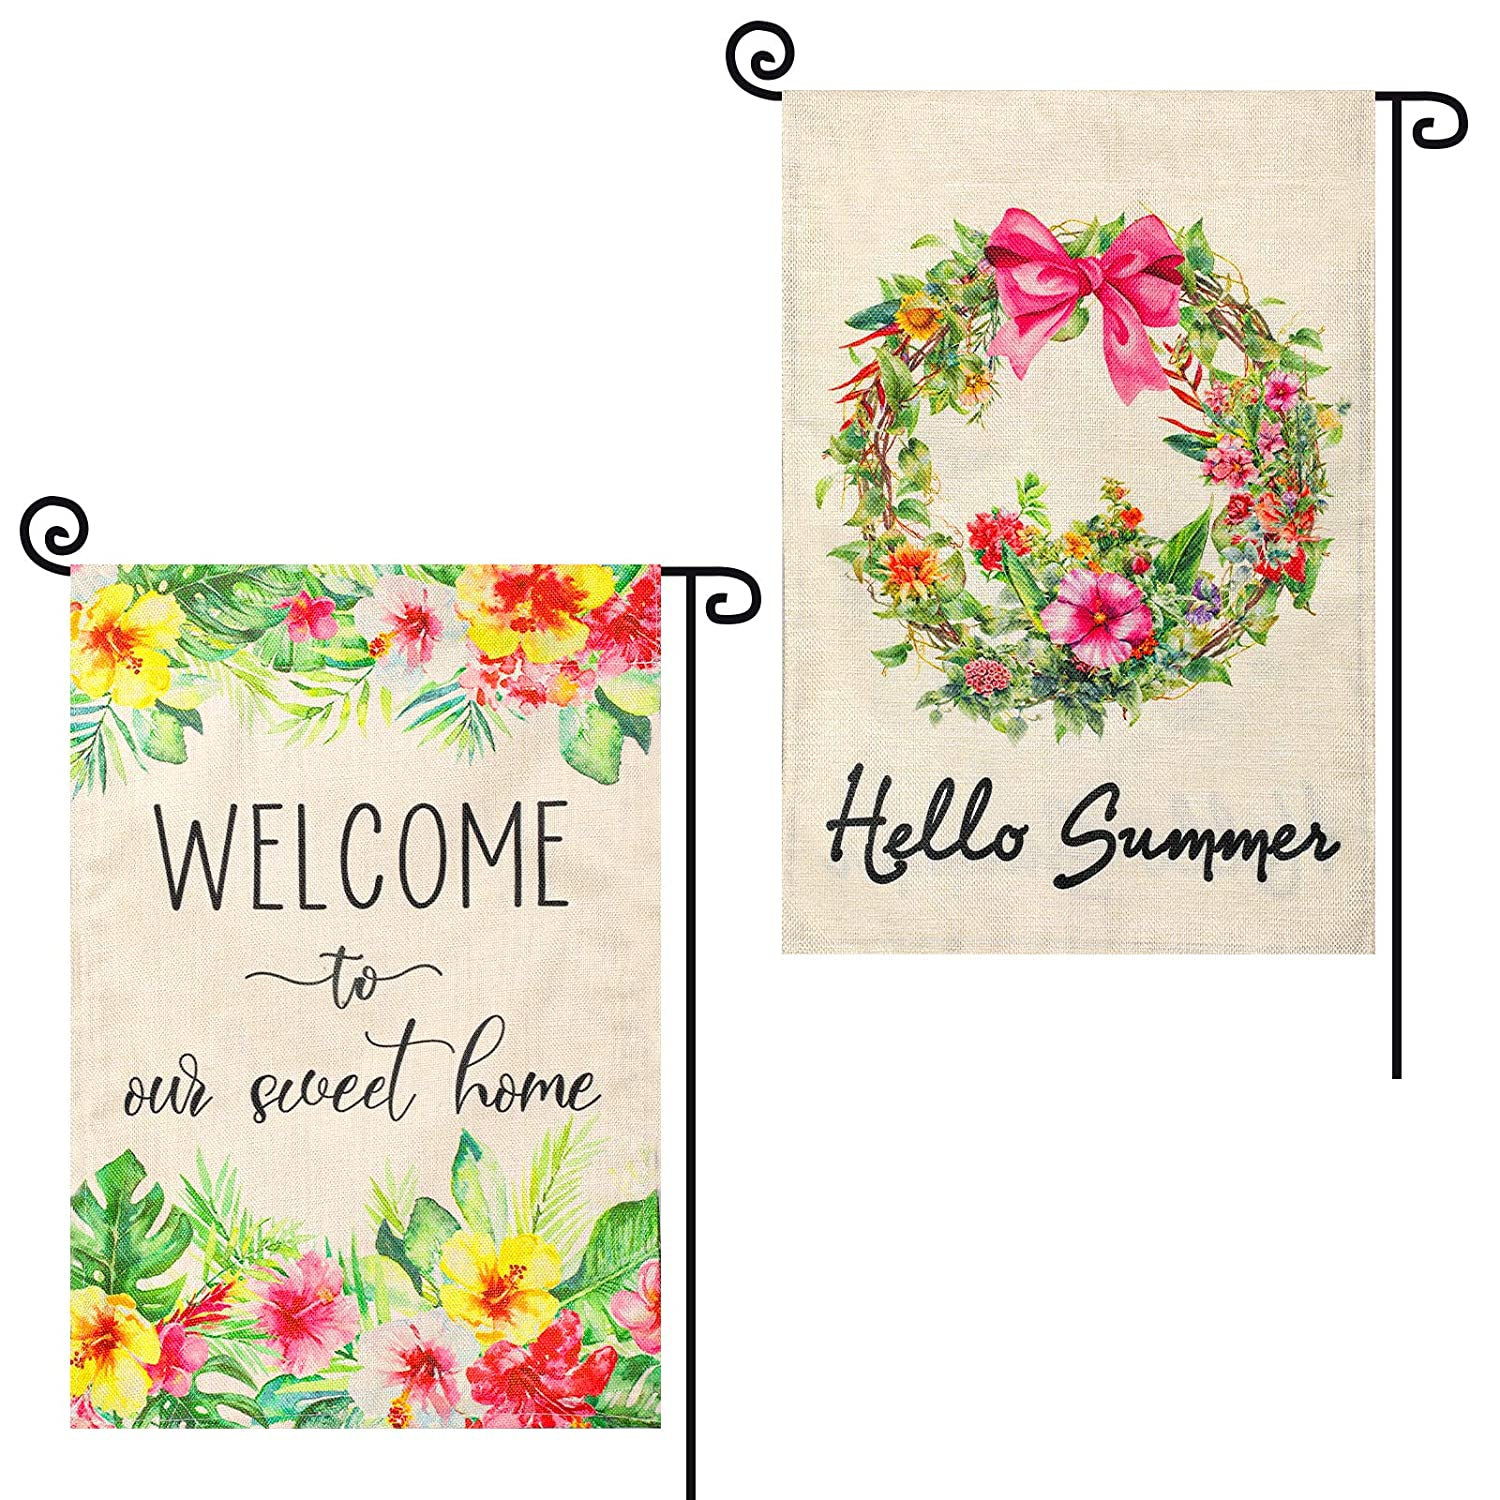 STSUNEU Hello Summer Garden Flag 12x18 Inch Double Sided, 2Pcs Flower Garden Flags Summer Welcome to Sweet Home Small Burlap Vertical Full of Summer Vitality for Outdoor Yard Decoration